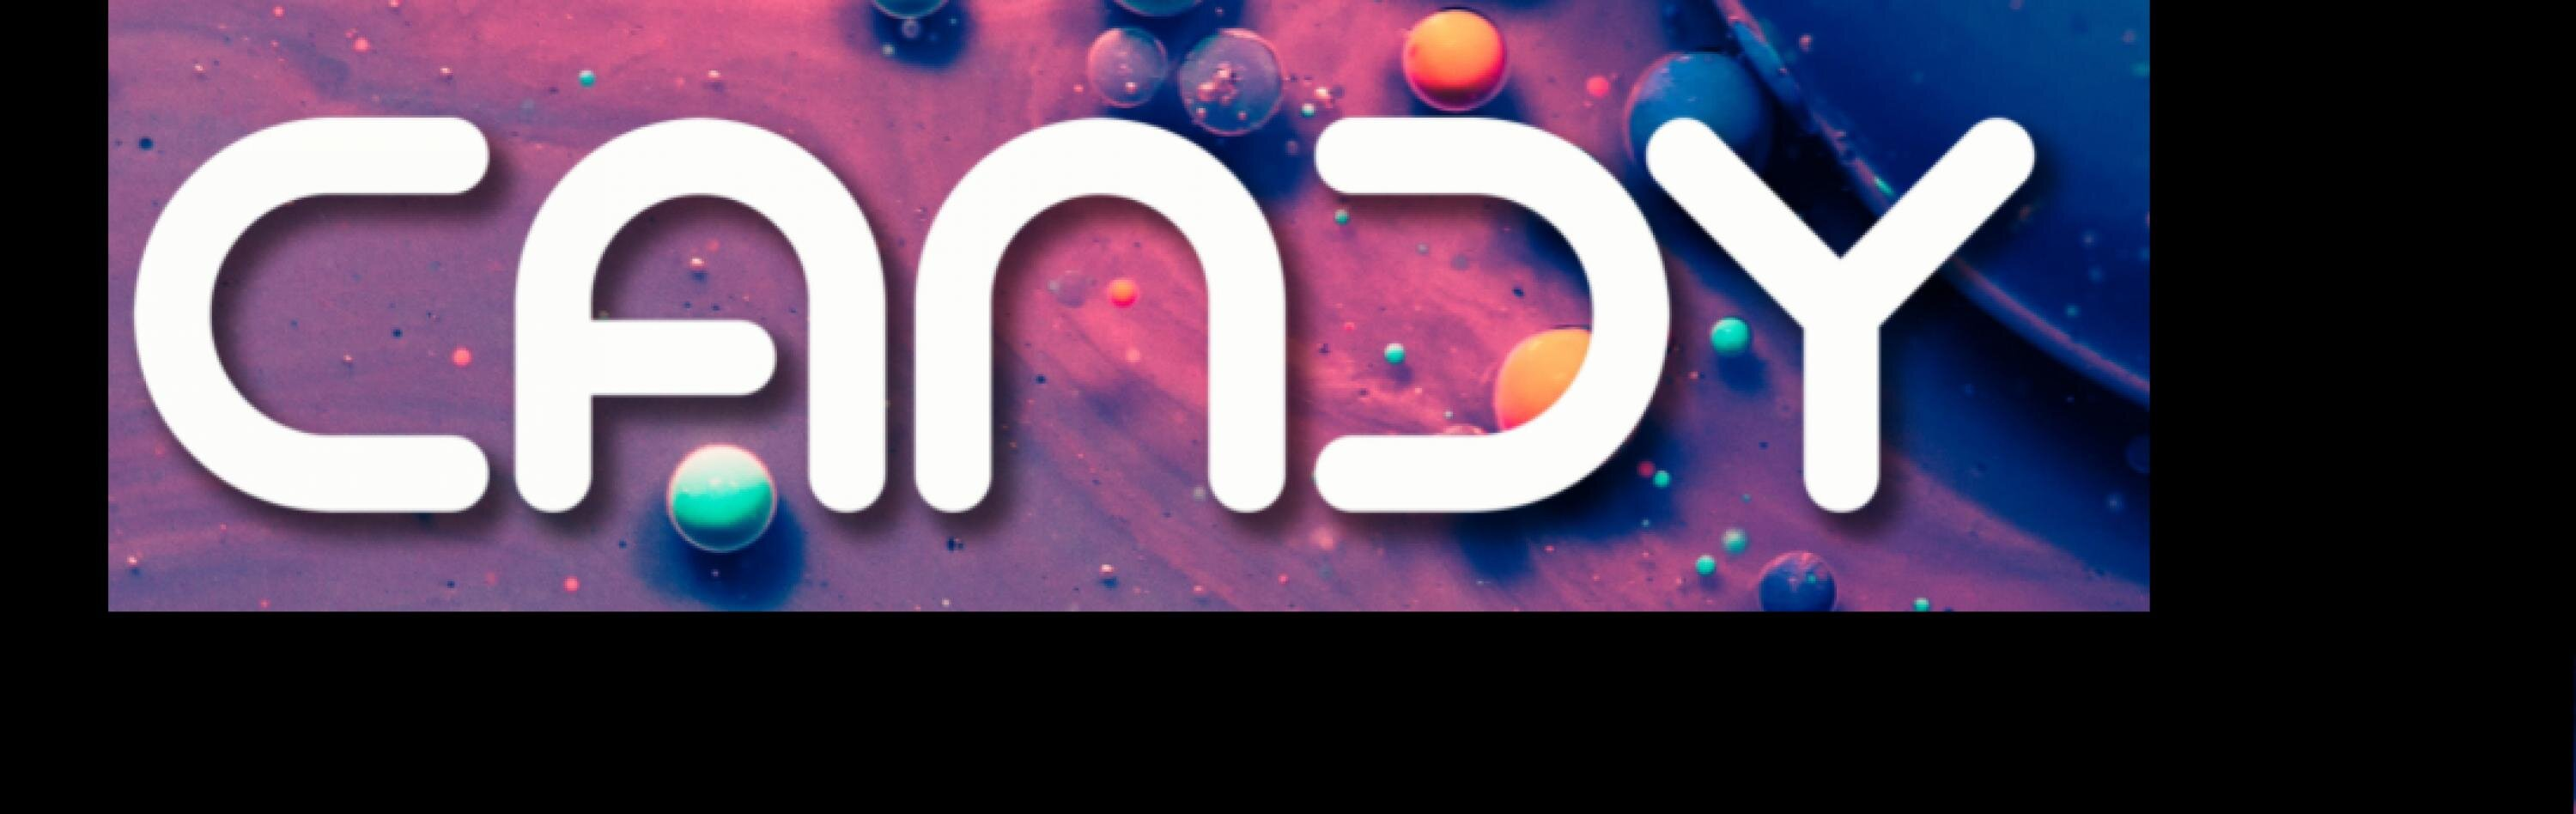 candyflakes cover photo